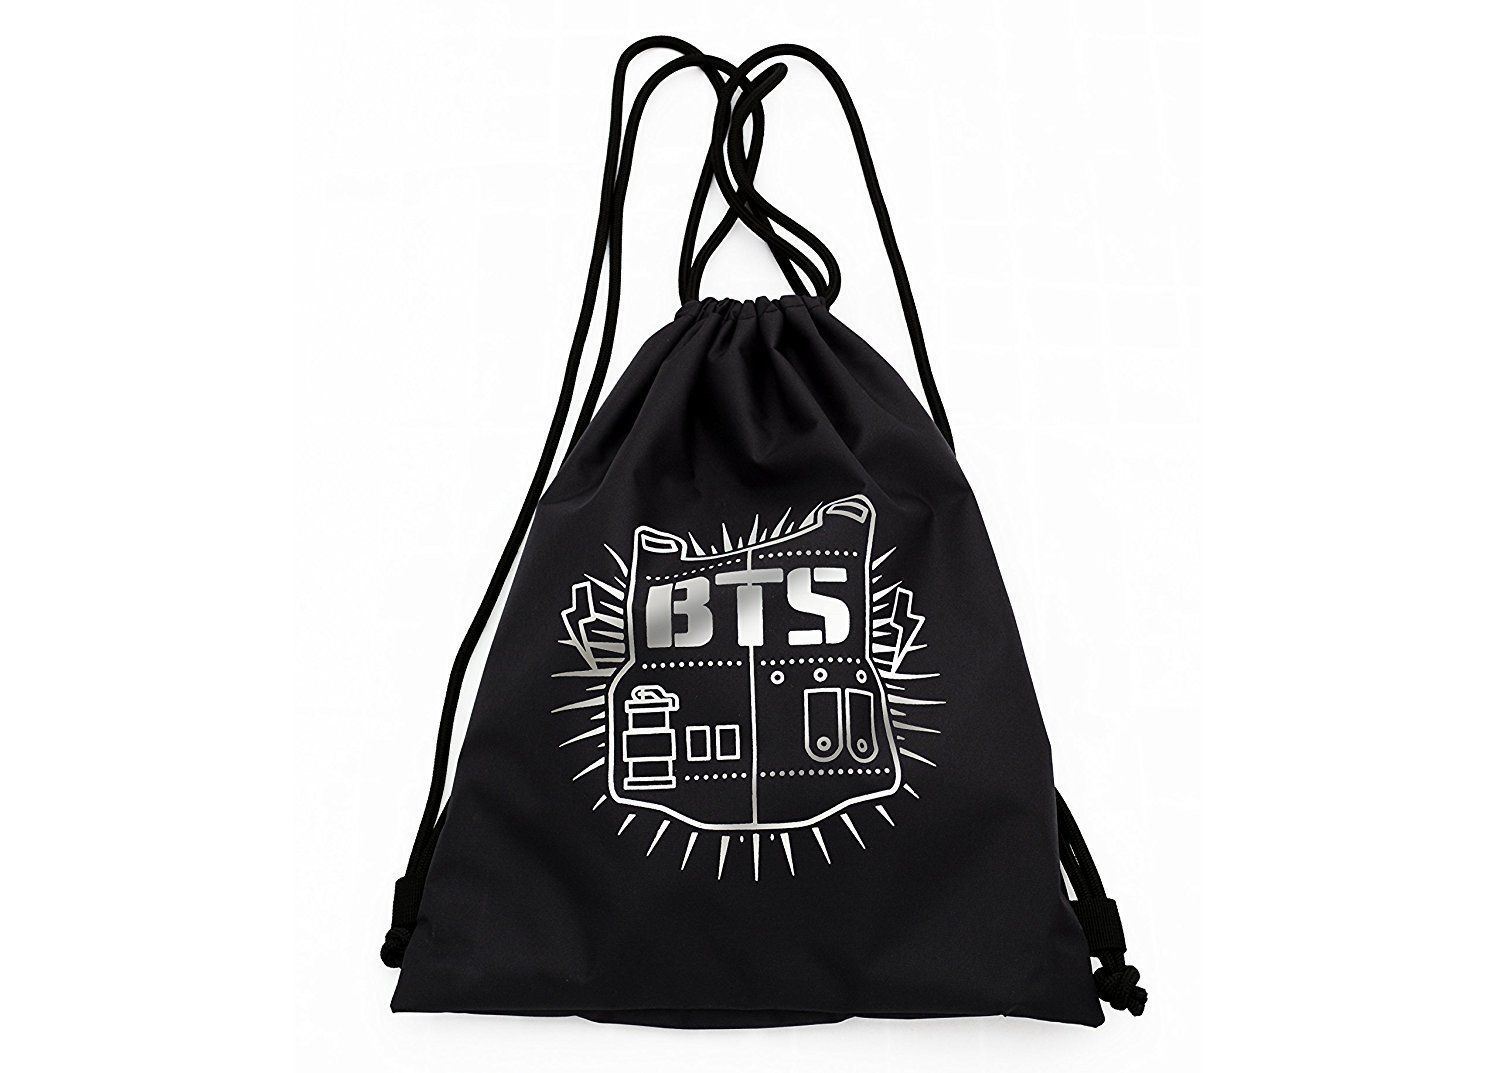 Kpop Bts Bangtan Boys Drawstring Backpack Sackpack Sack Bag School Bag 182